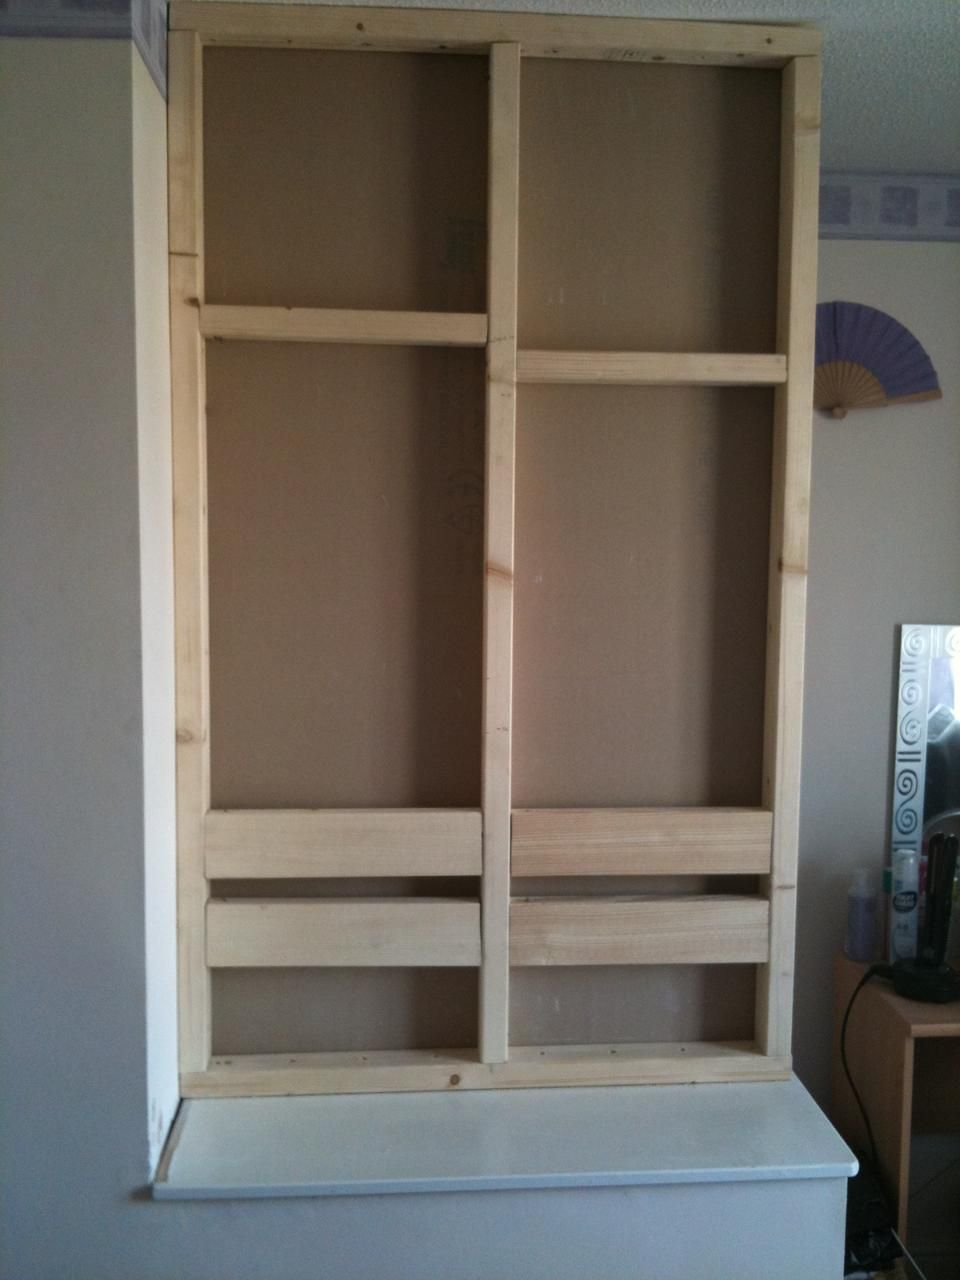 Stair Box In Bedroom: Box, Bedrooms And Room